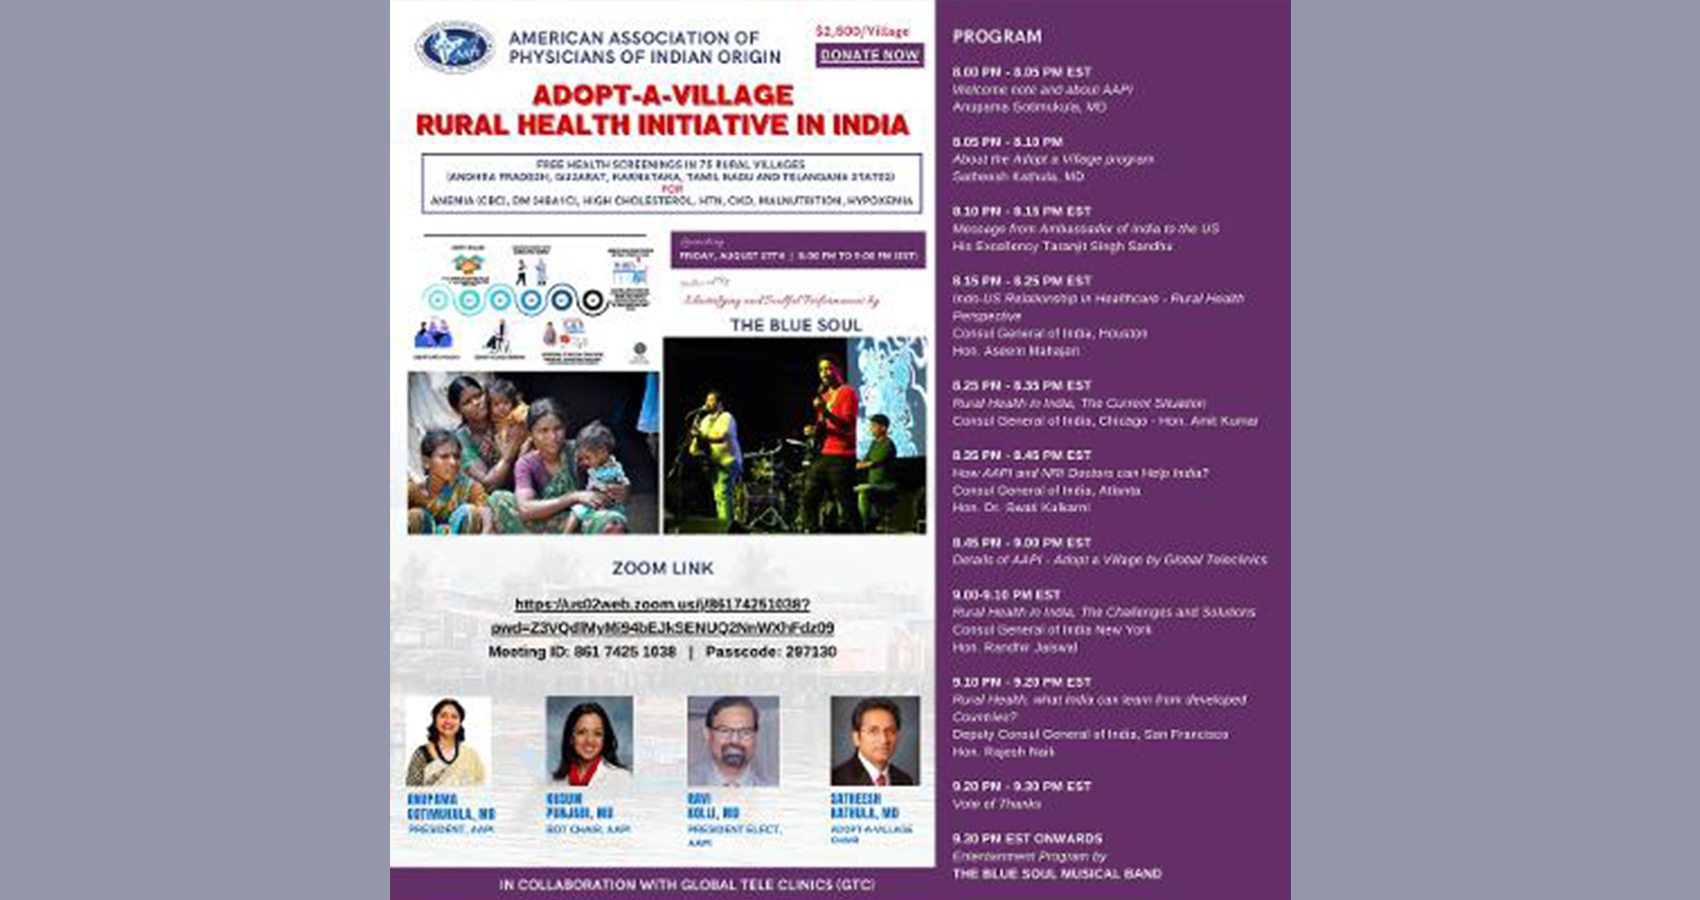 AAPI Launches Adopt-A-Village, A Rural Health Initiative In India Ambassador Taranjit Singh Sandhu & Consul Generals From All 5 Consulates In US Applaud AAPI's Efforts